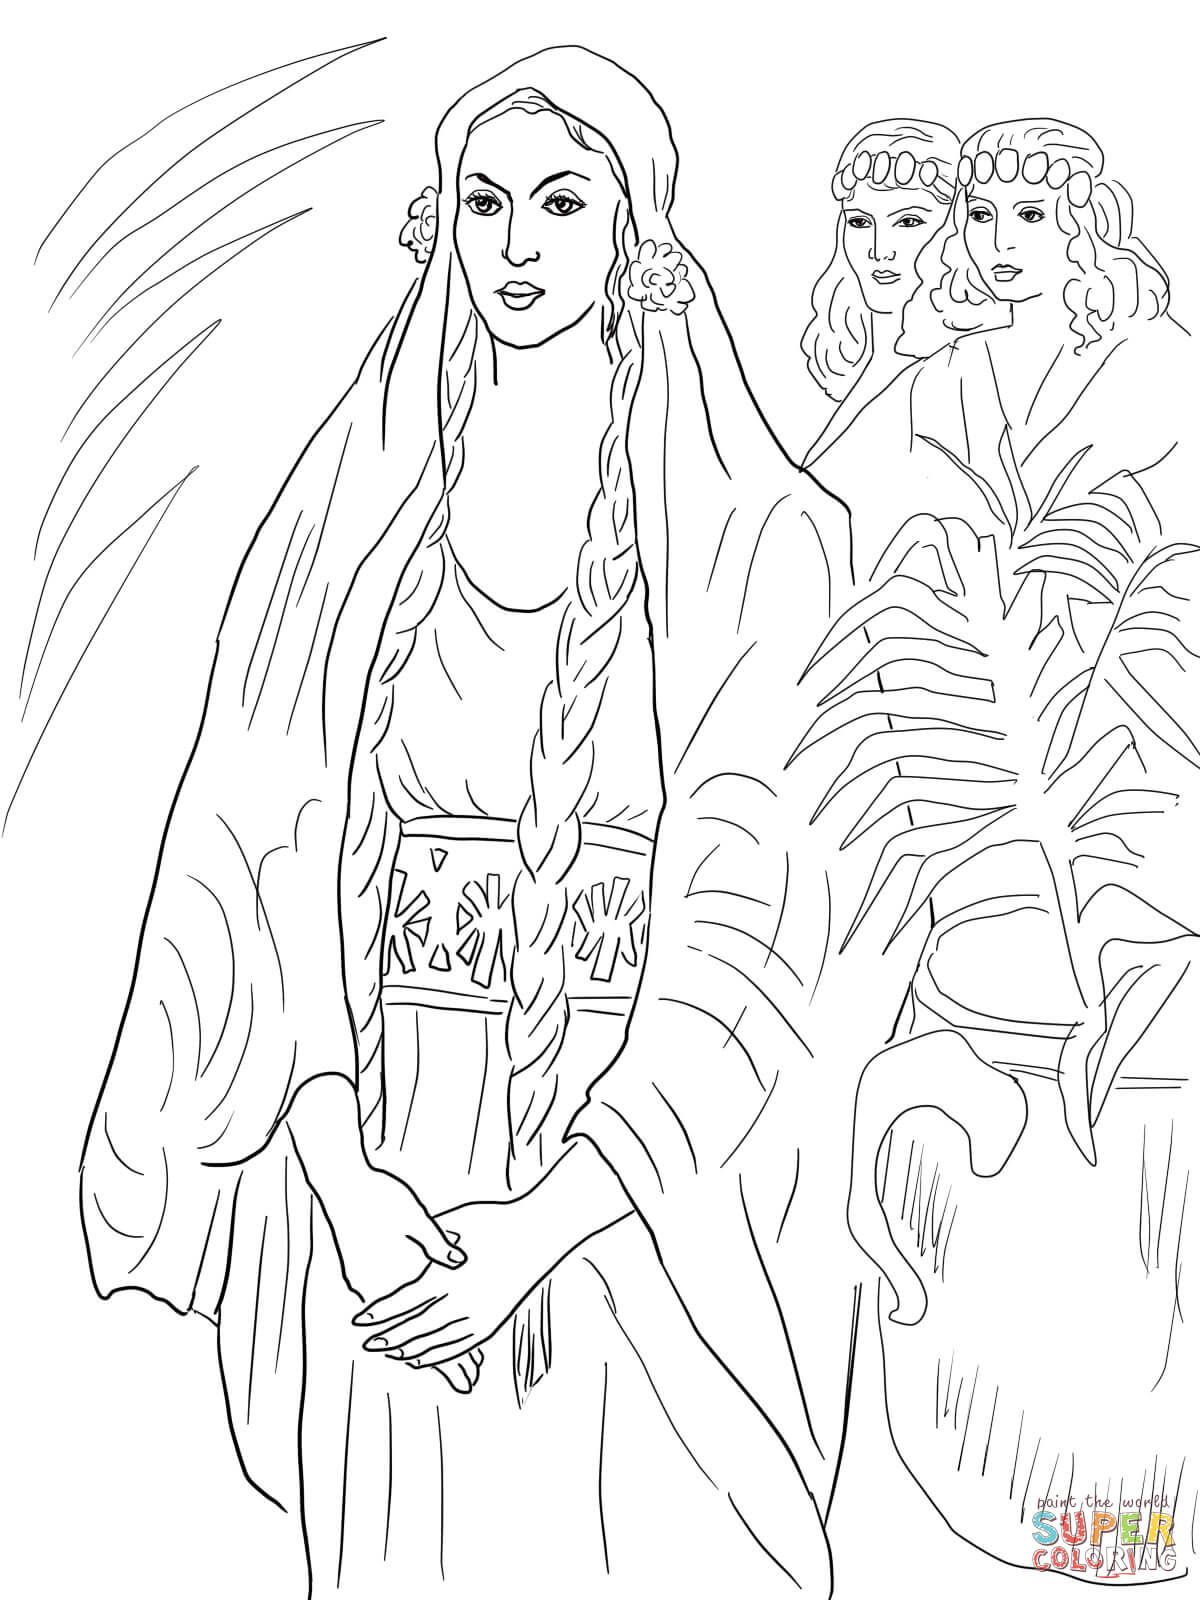 Esther the Queen | Super Coloring | Coloring Pages | Pinterest ...